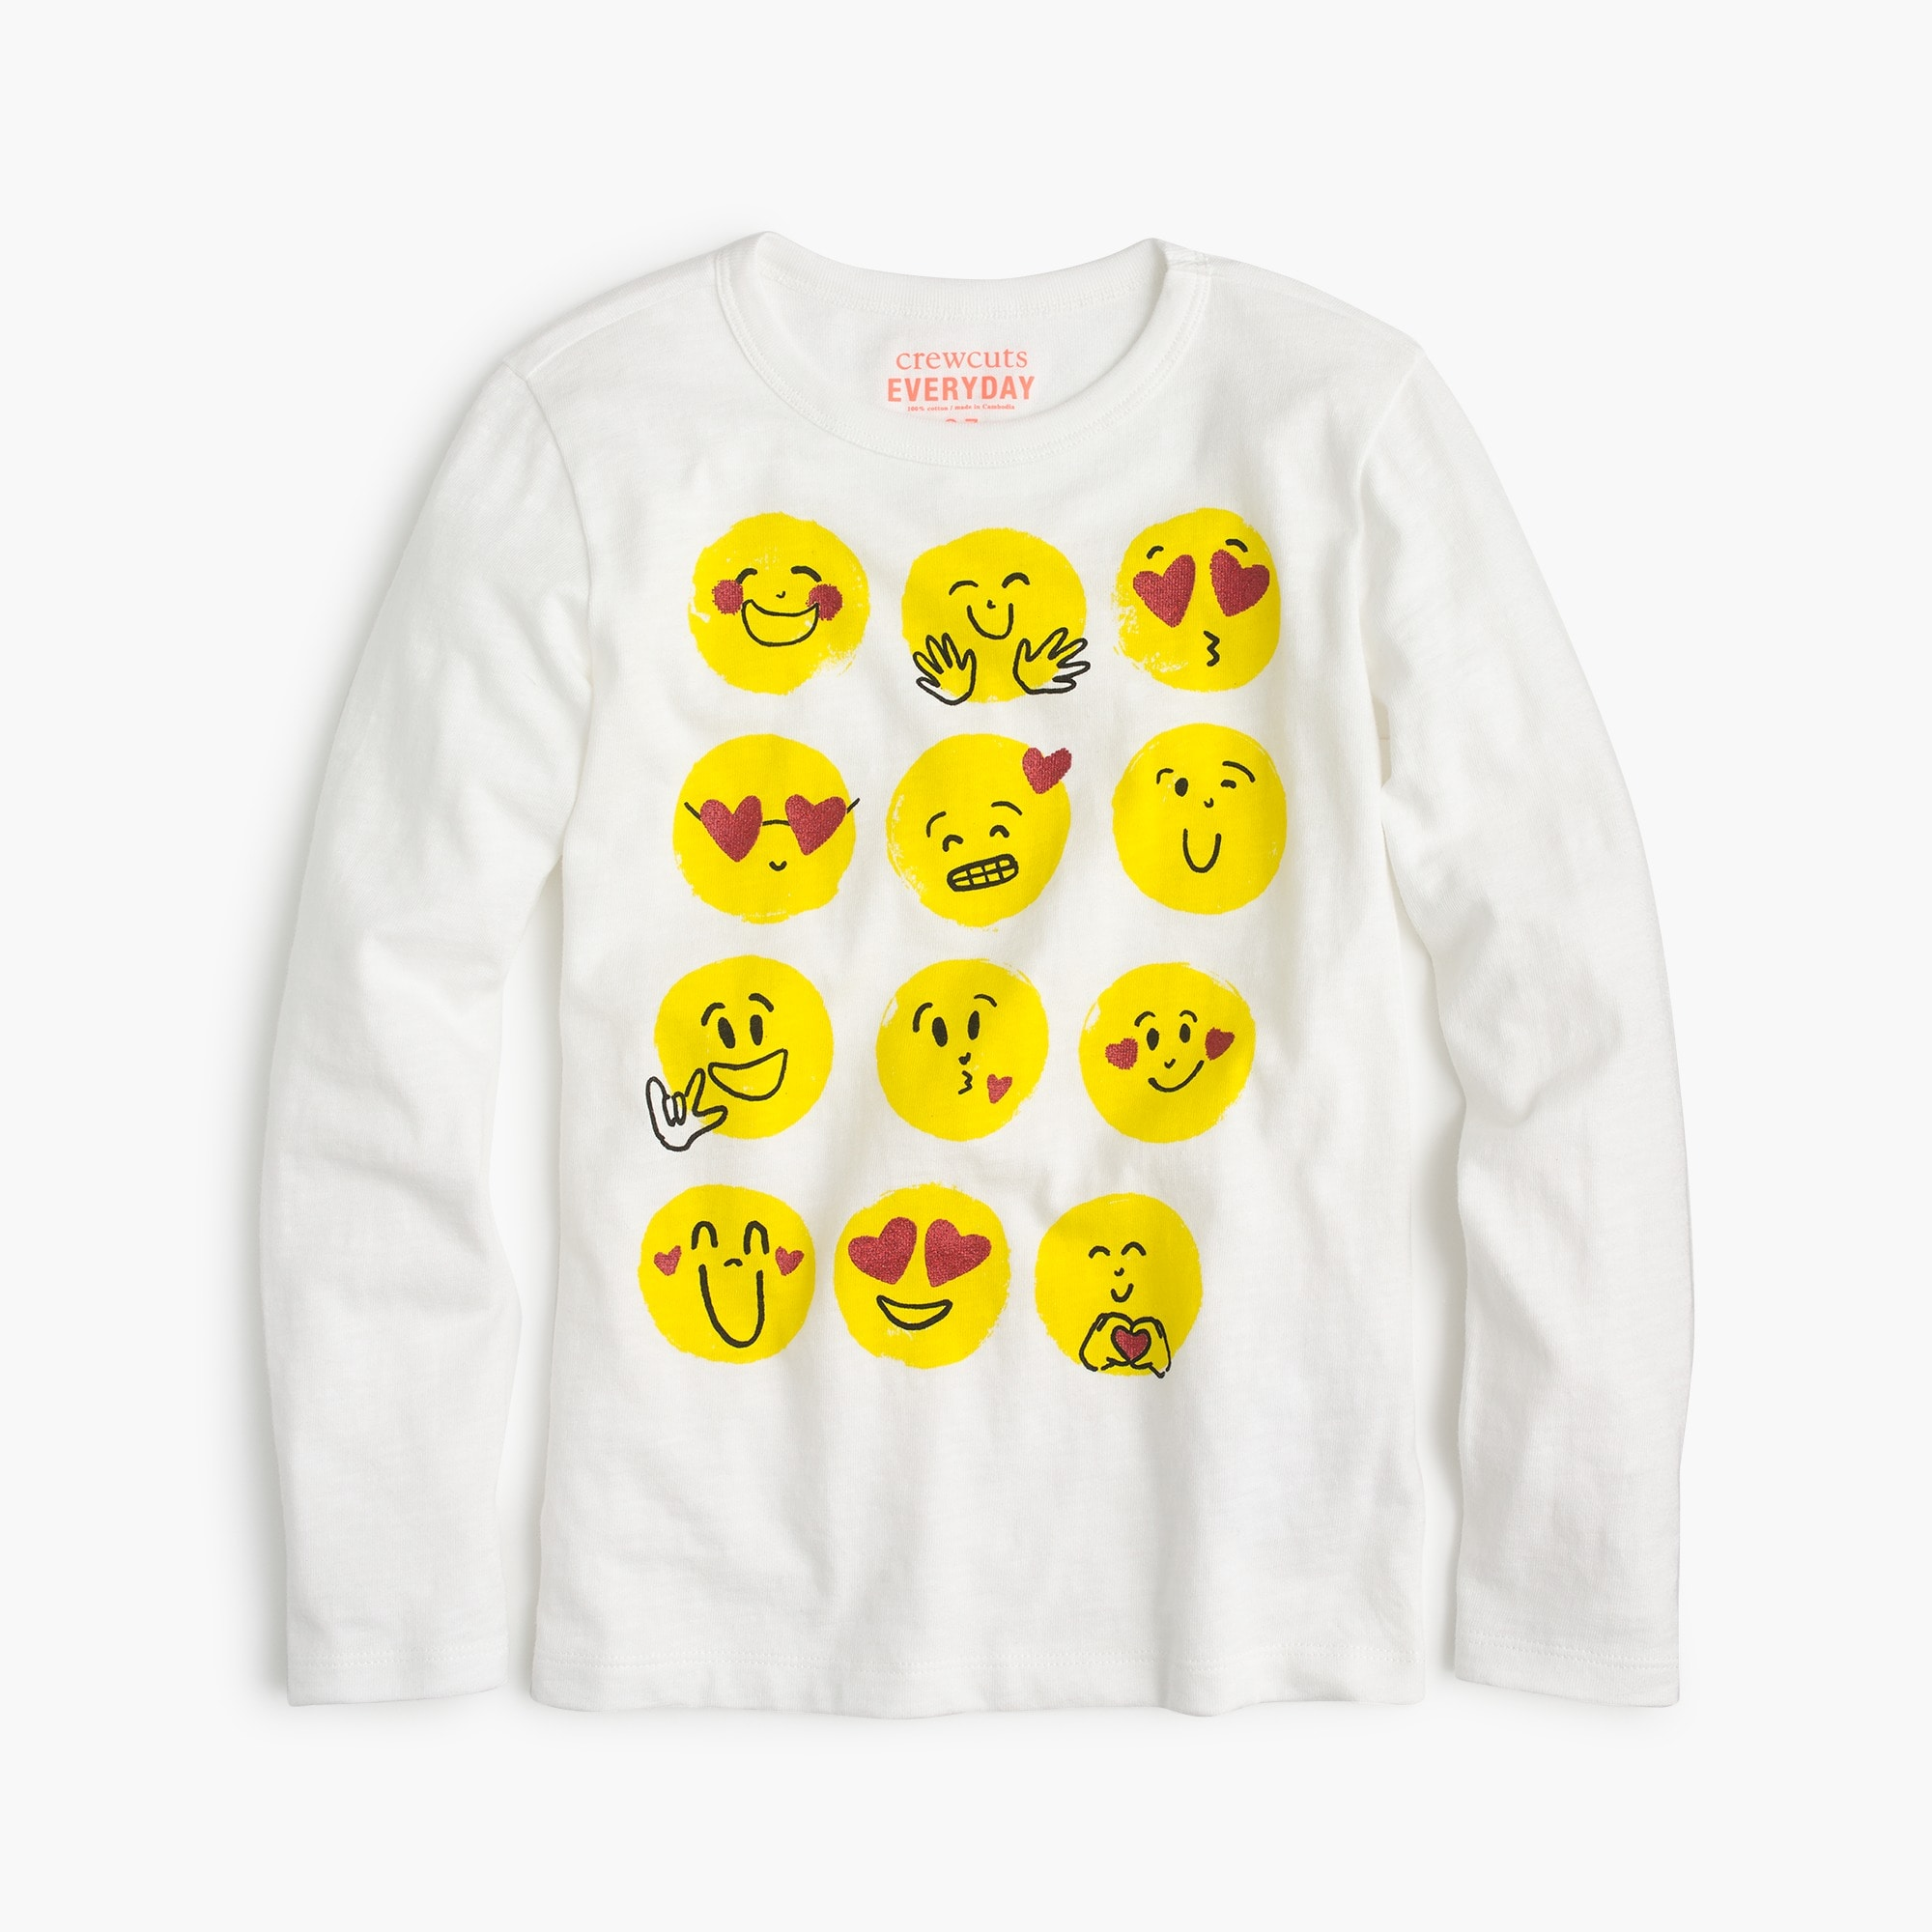 Girl's multi-emoji T-shirt girl new arrivals c